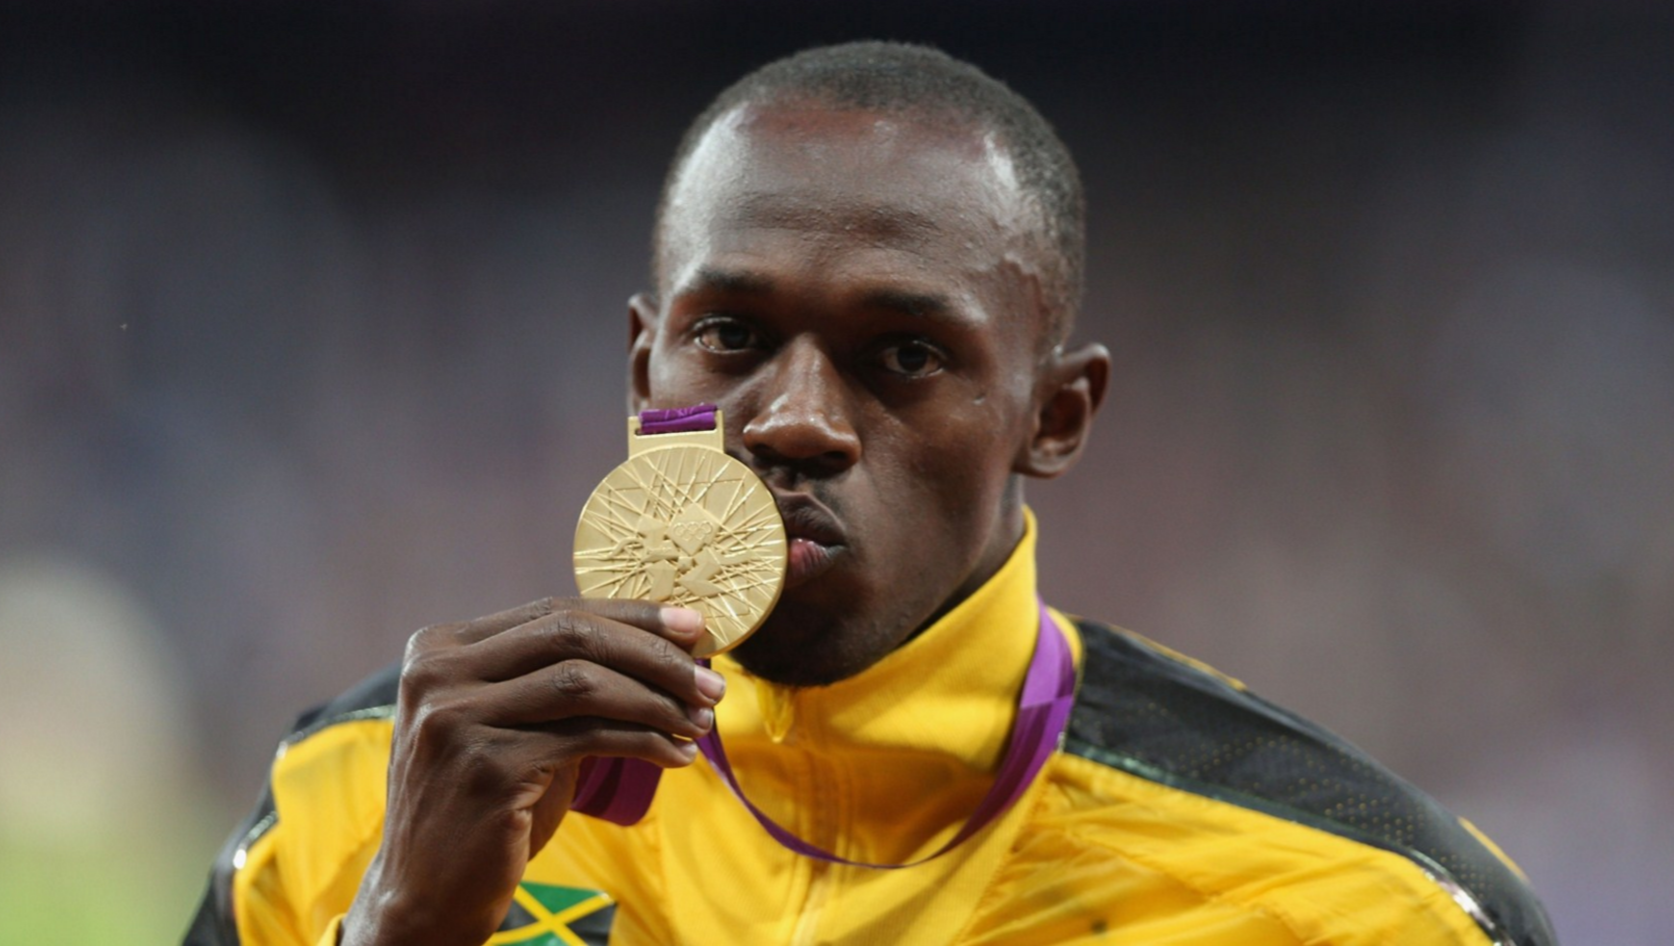 Usain Bolt can't end the greatest show in track yet